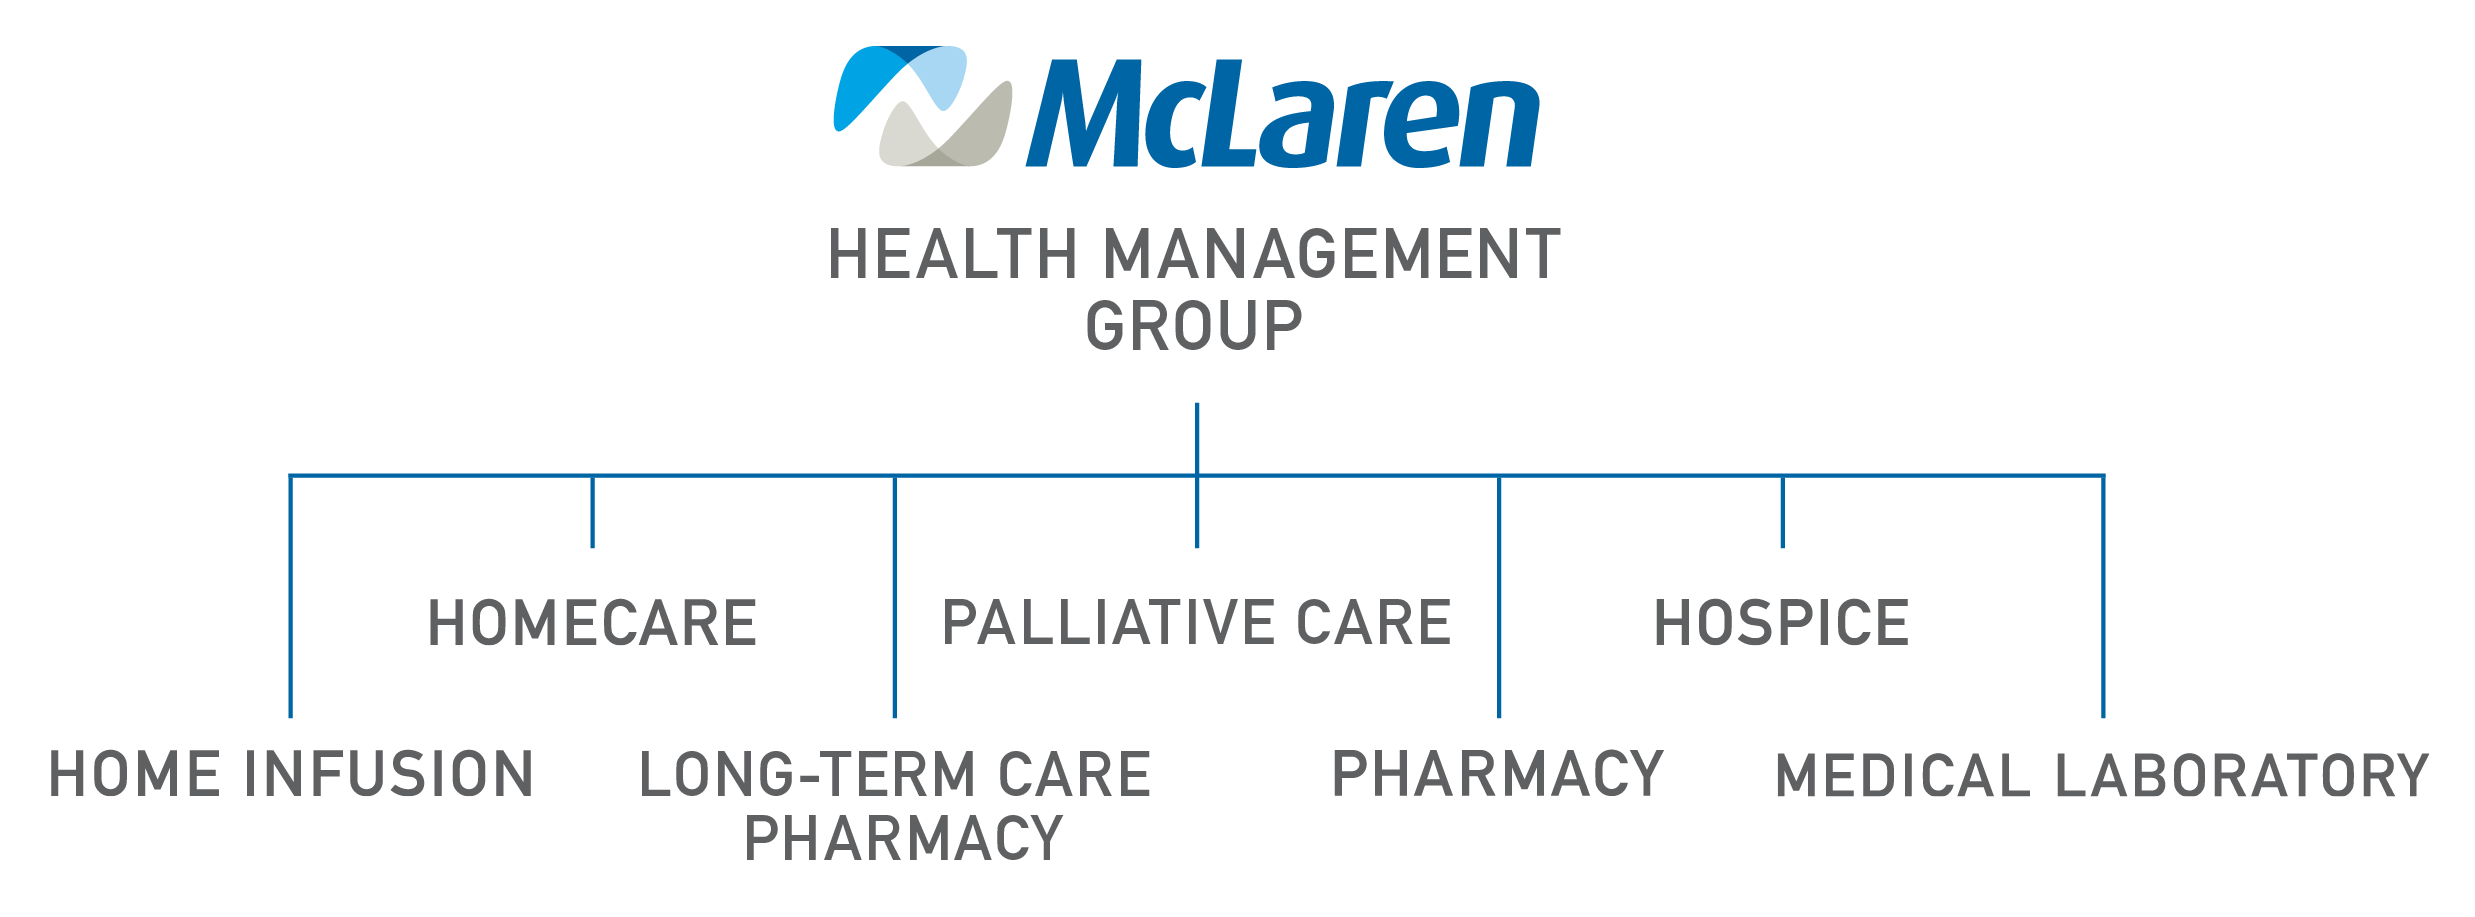 Amazing McLaren Health Management Group Divisions